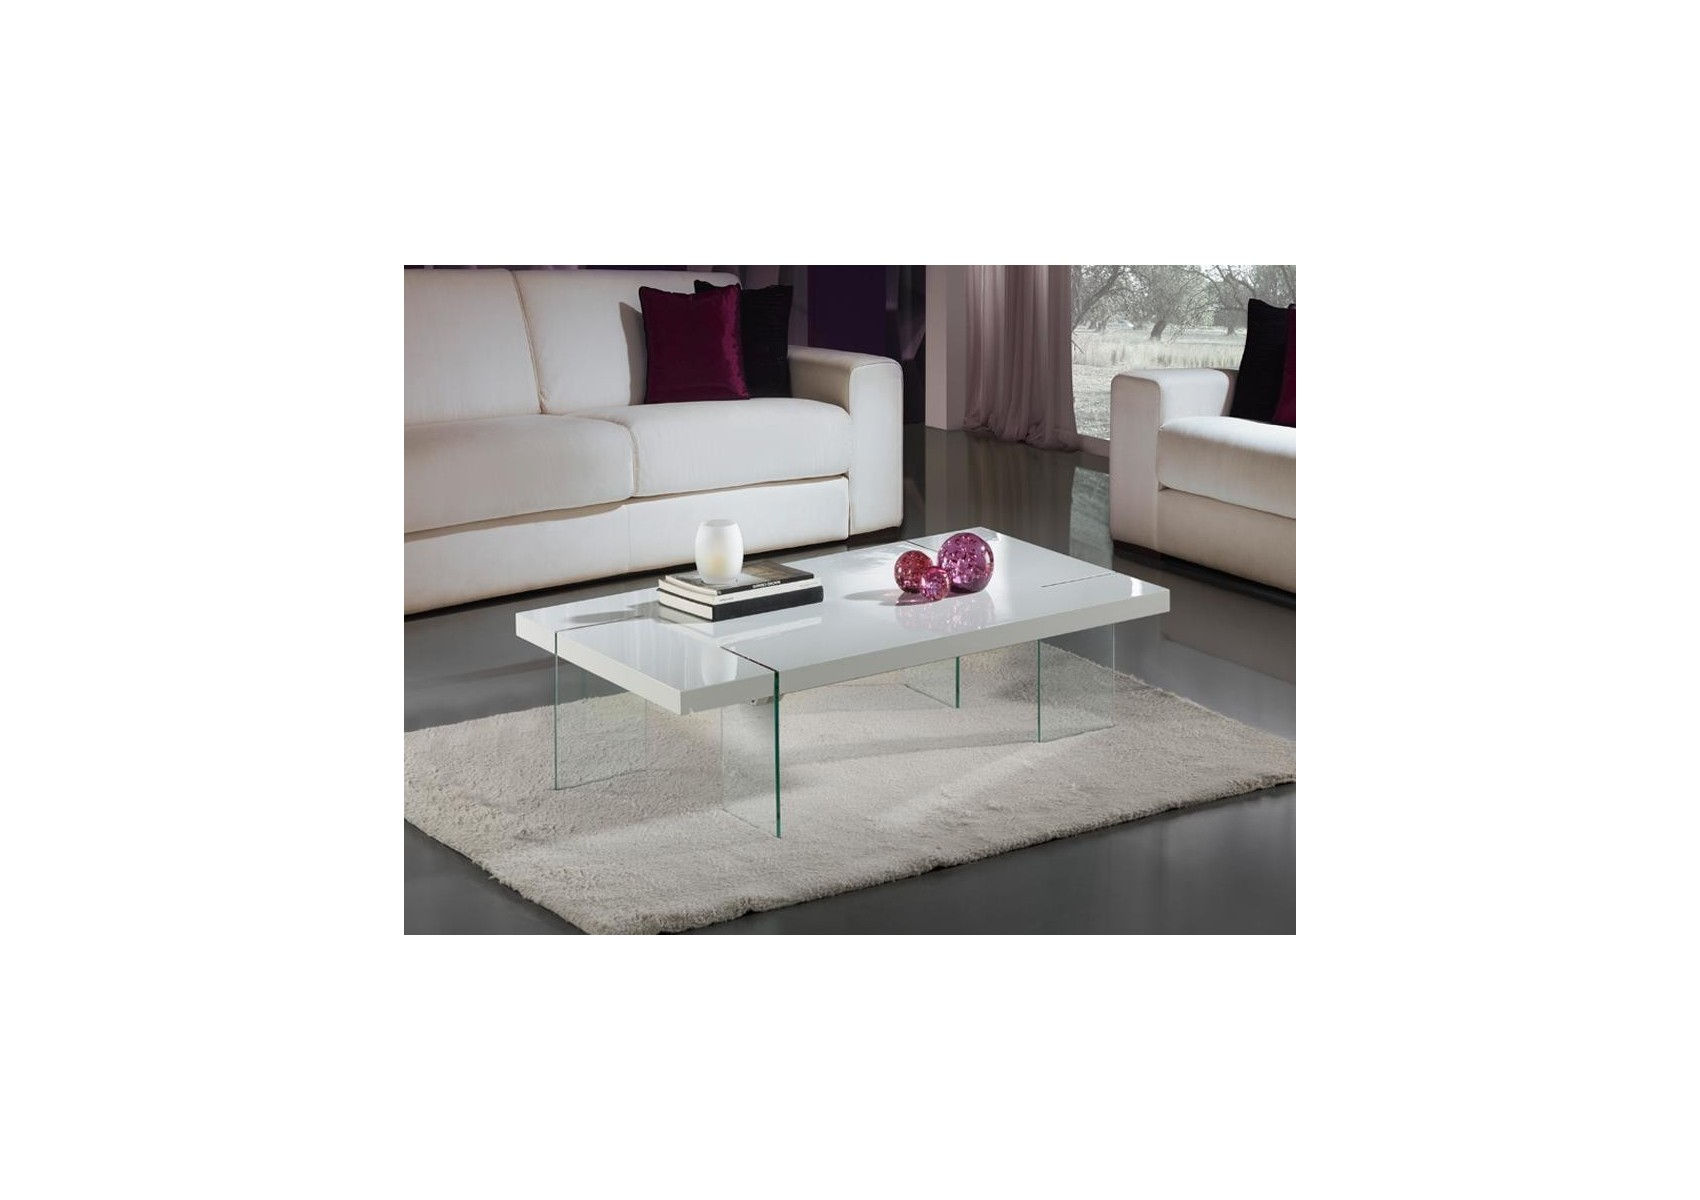 Table basse design laqu blanc et verre tremp brisa - Table basse verre et blanc ...